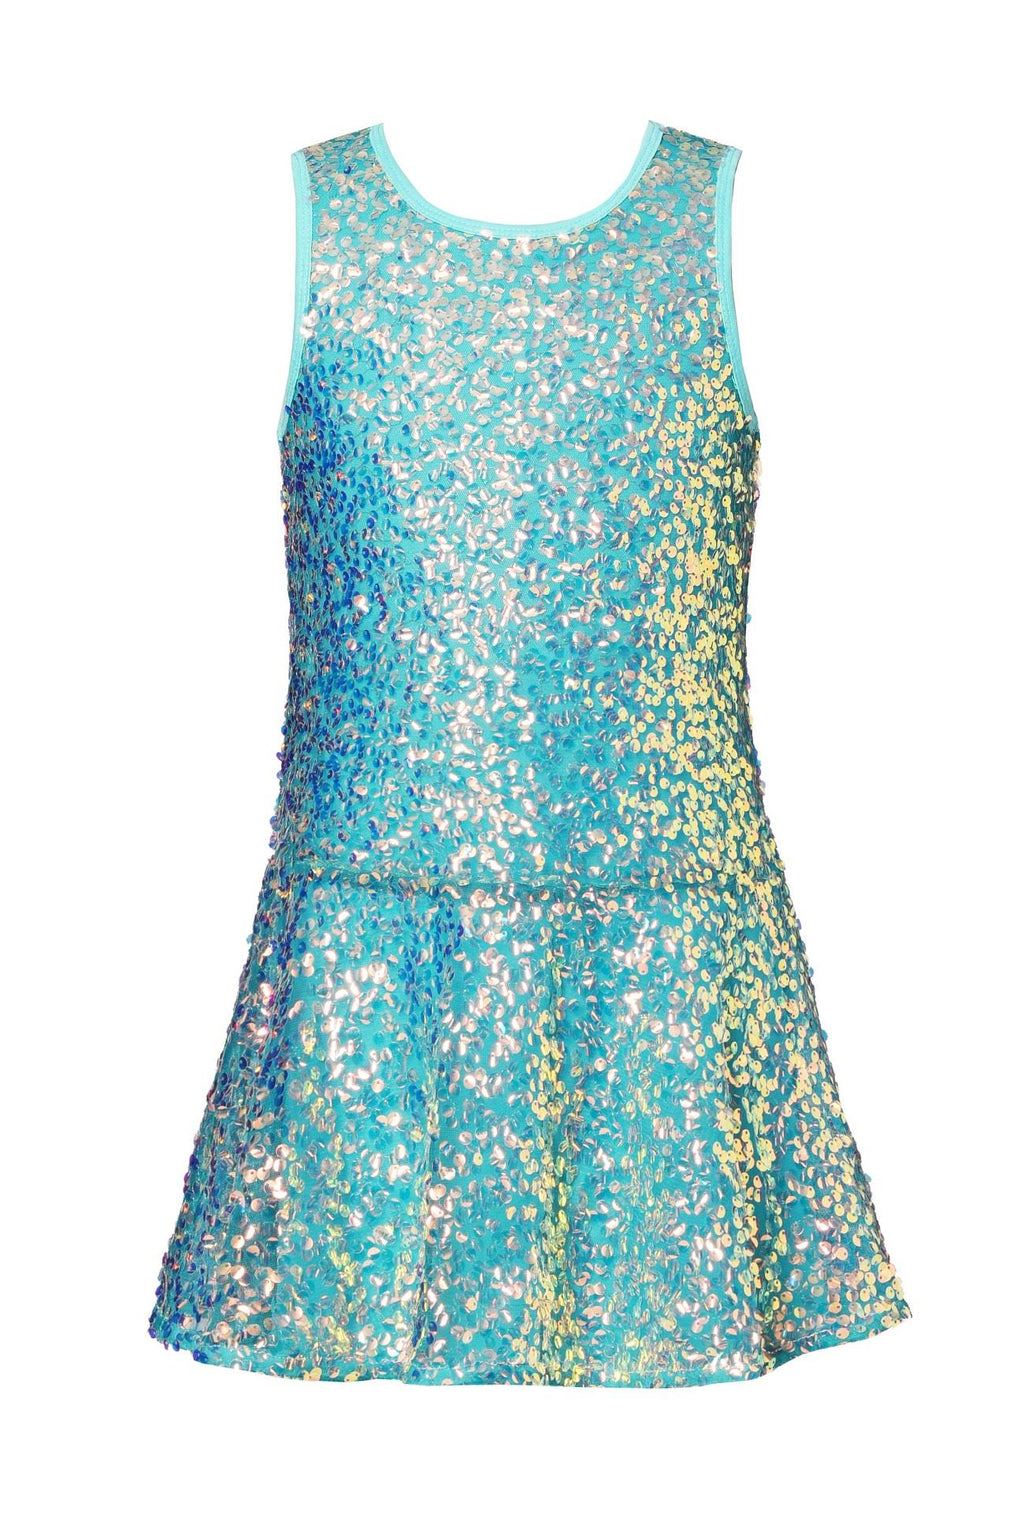 Hannah Banana Sequin Dress